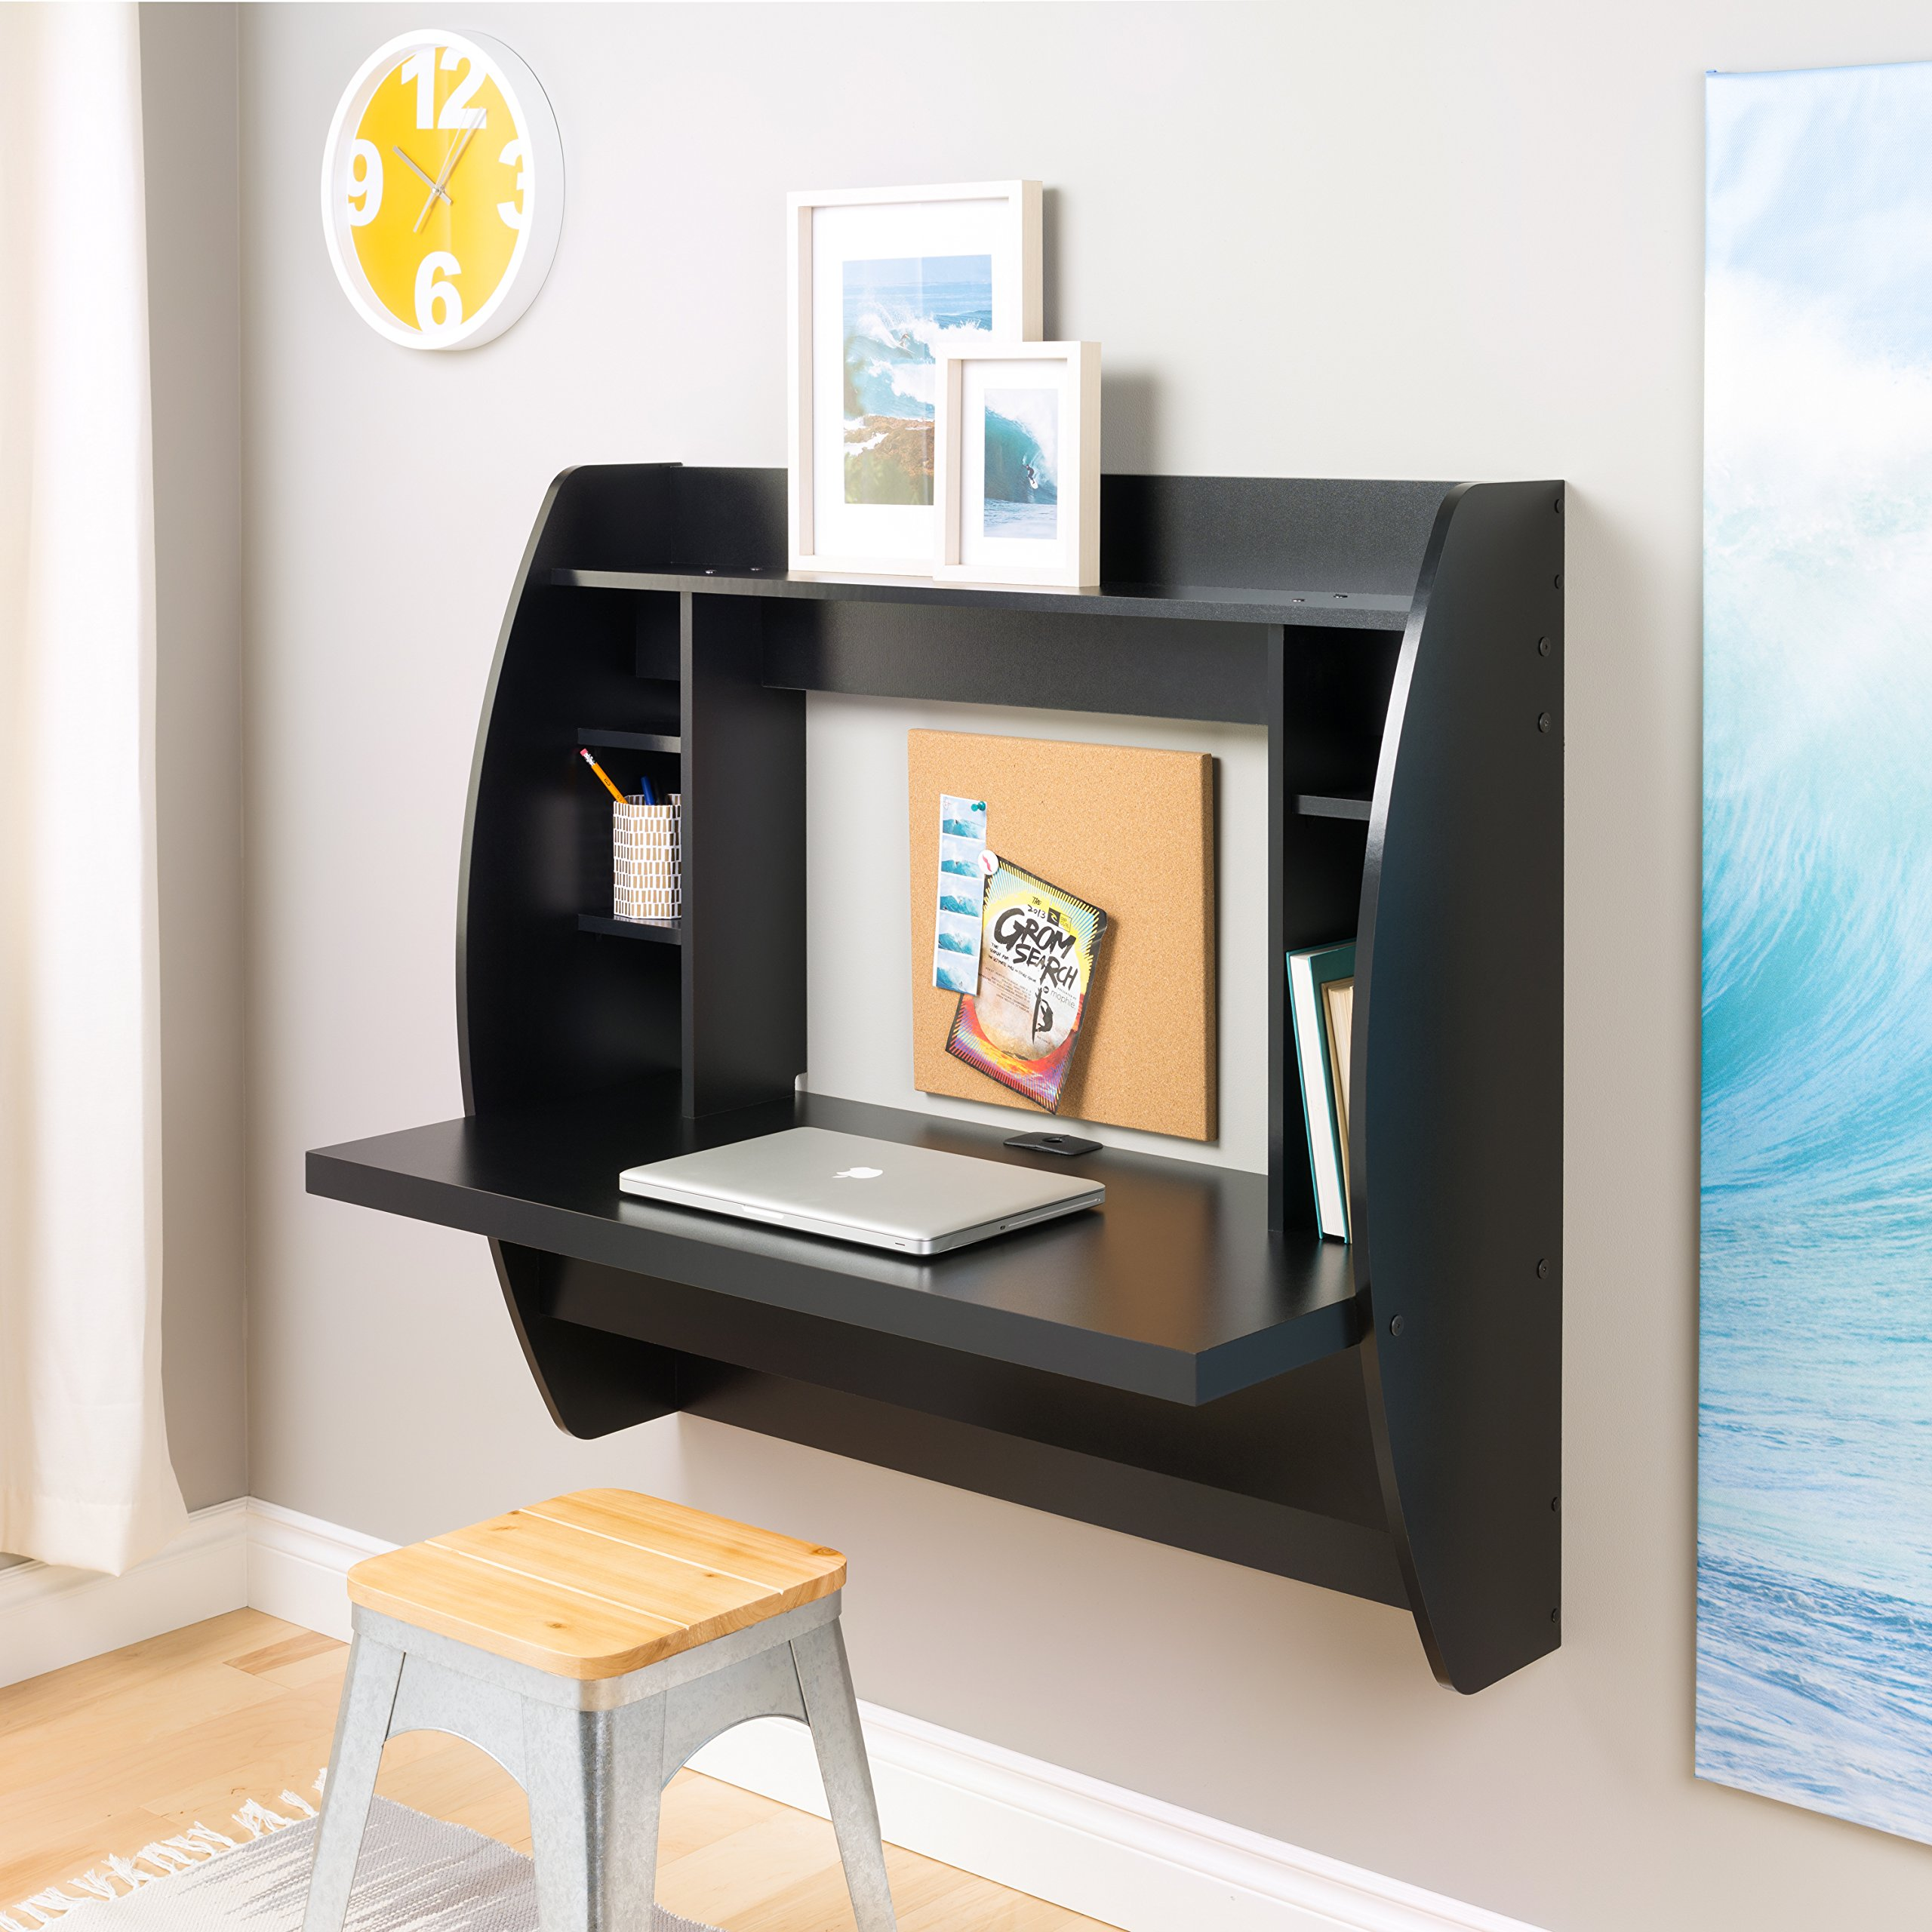 Prepac Wall Mounted Floating Desk with Storage in Black by Prepac